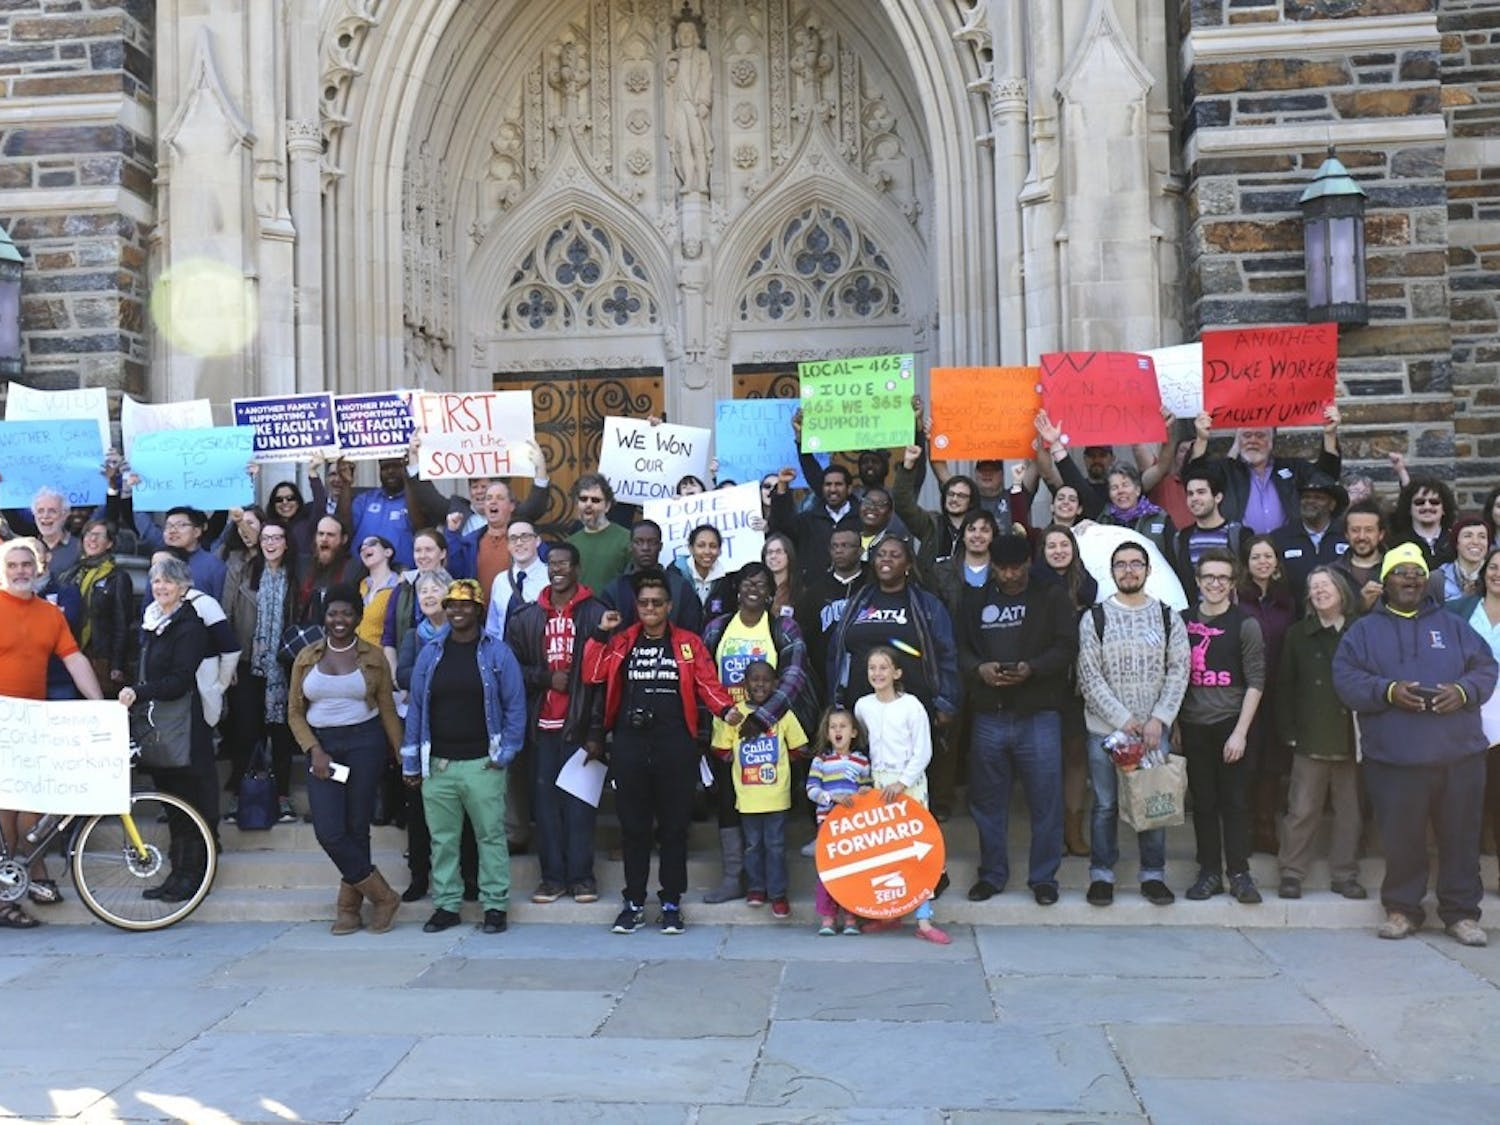 In 2016, People gathered at Duke Chapel to celebrate Duke Teaching First becoming eligible to unionize.